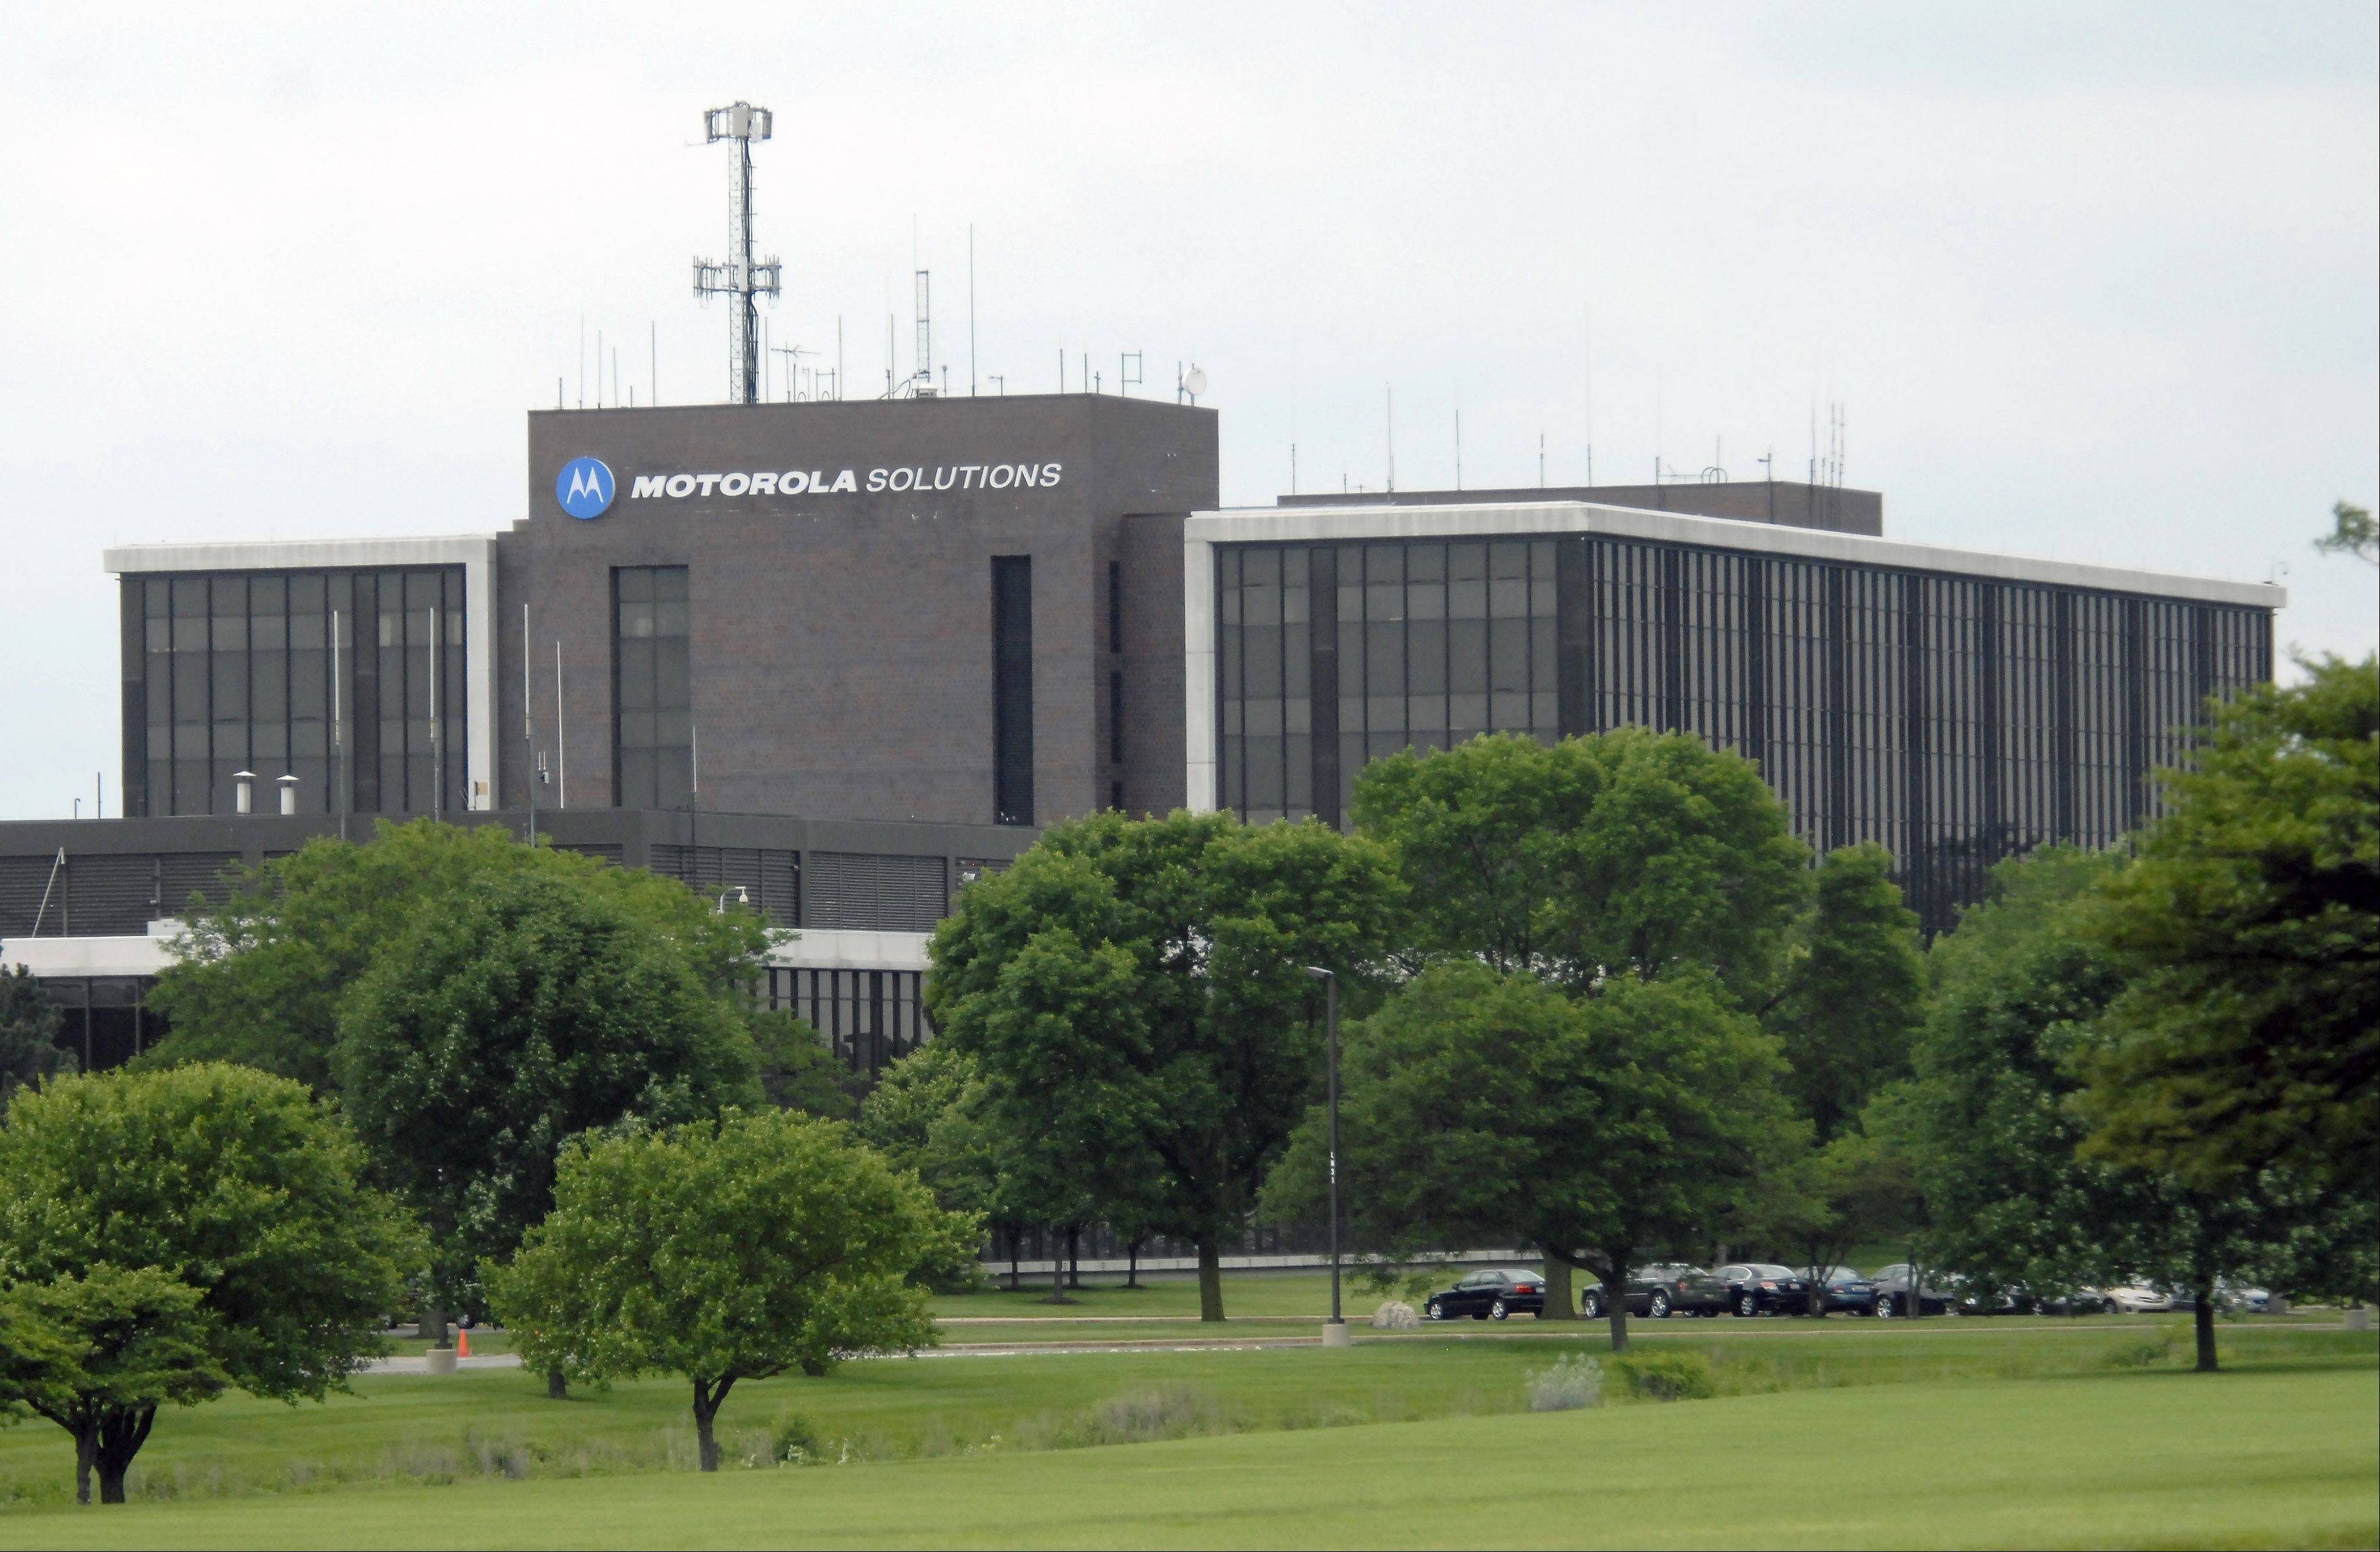 Motorola Solutions in Schaumburg.